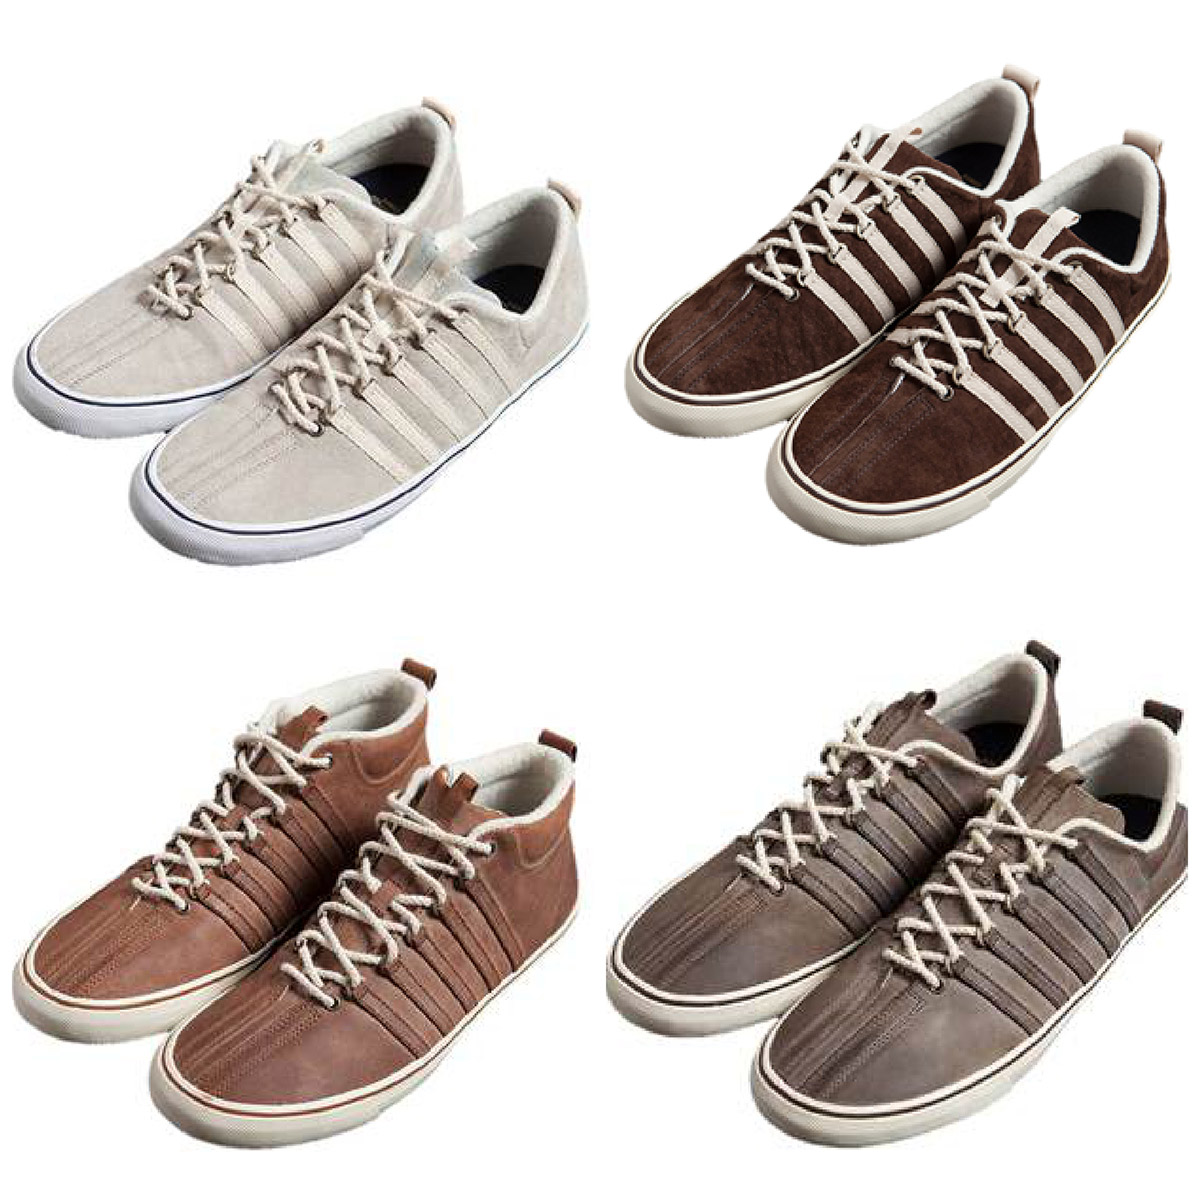 Billy Reid for K-Swiss price purchase sale cost buy store retail launch release bone chocolate wax leather collection